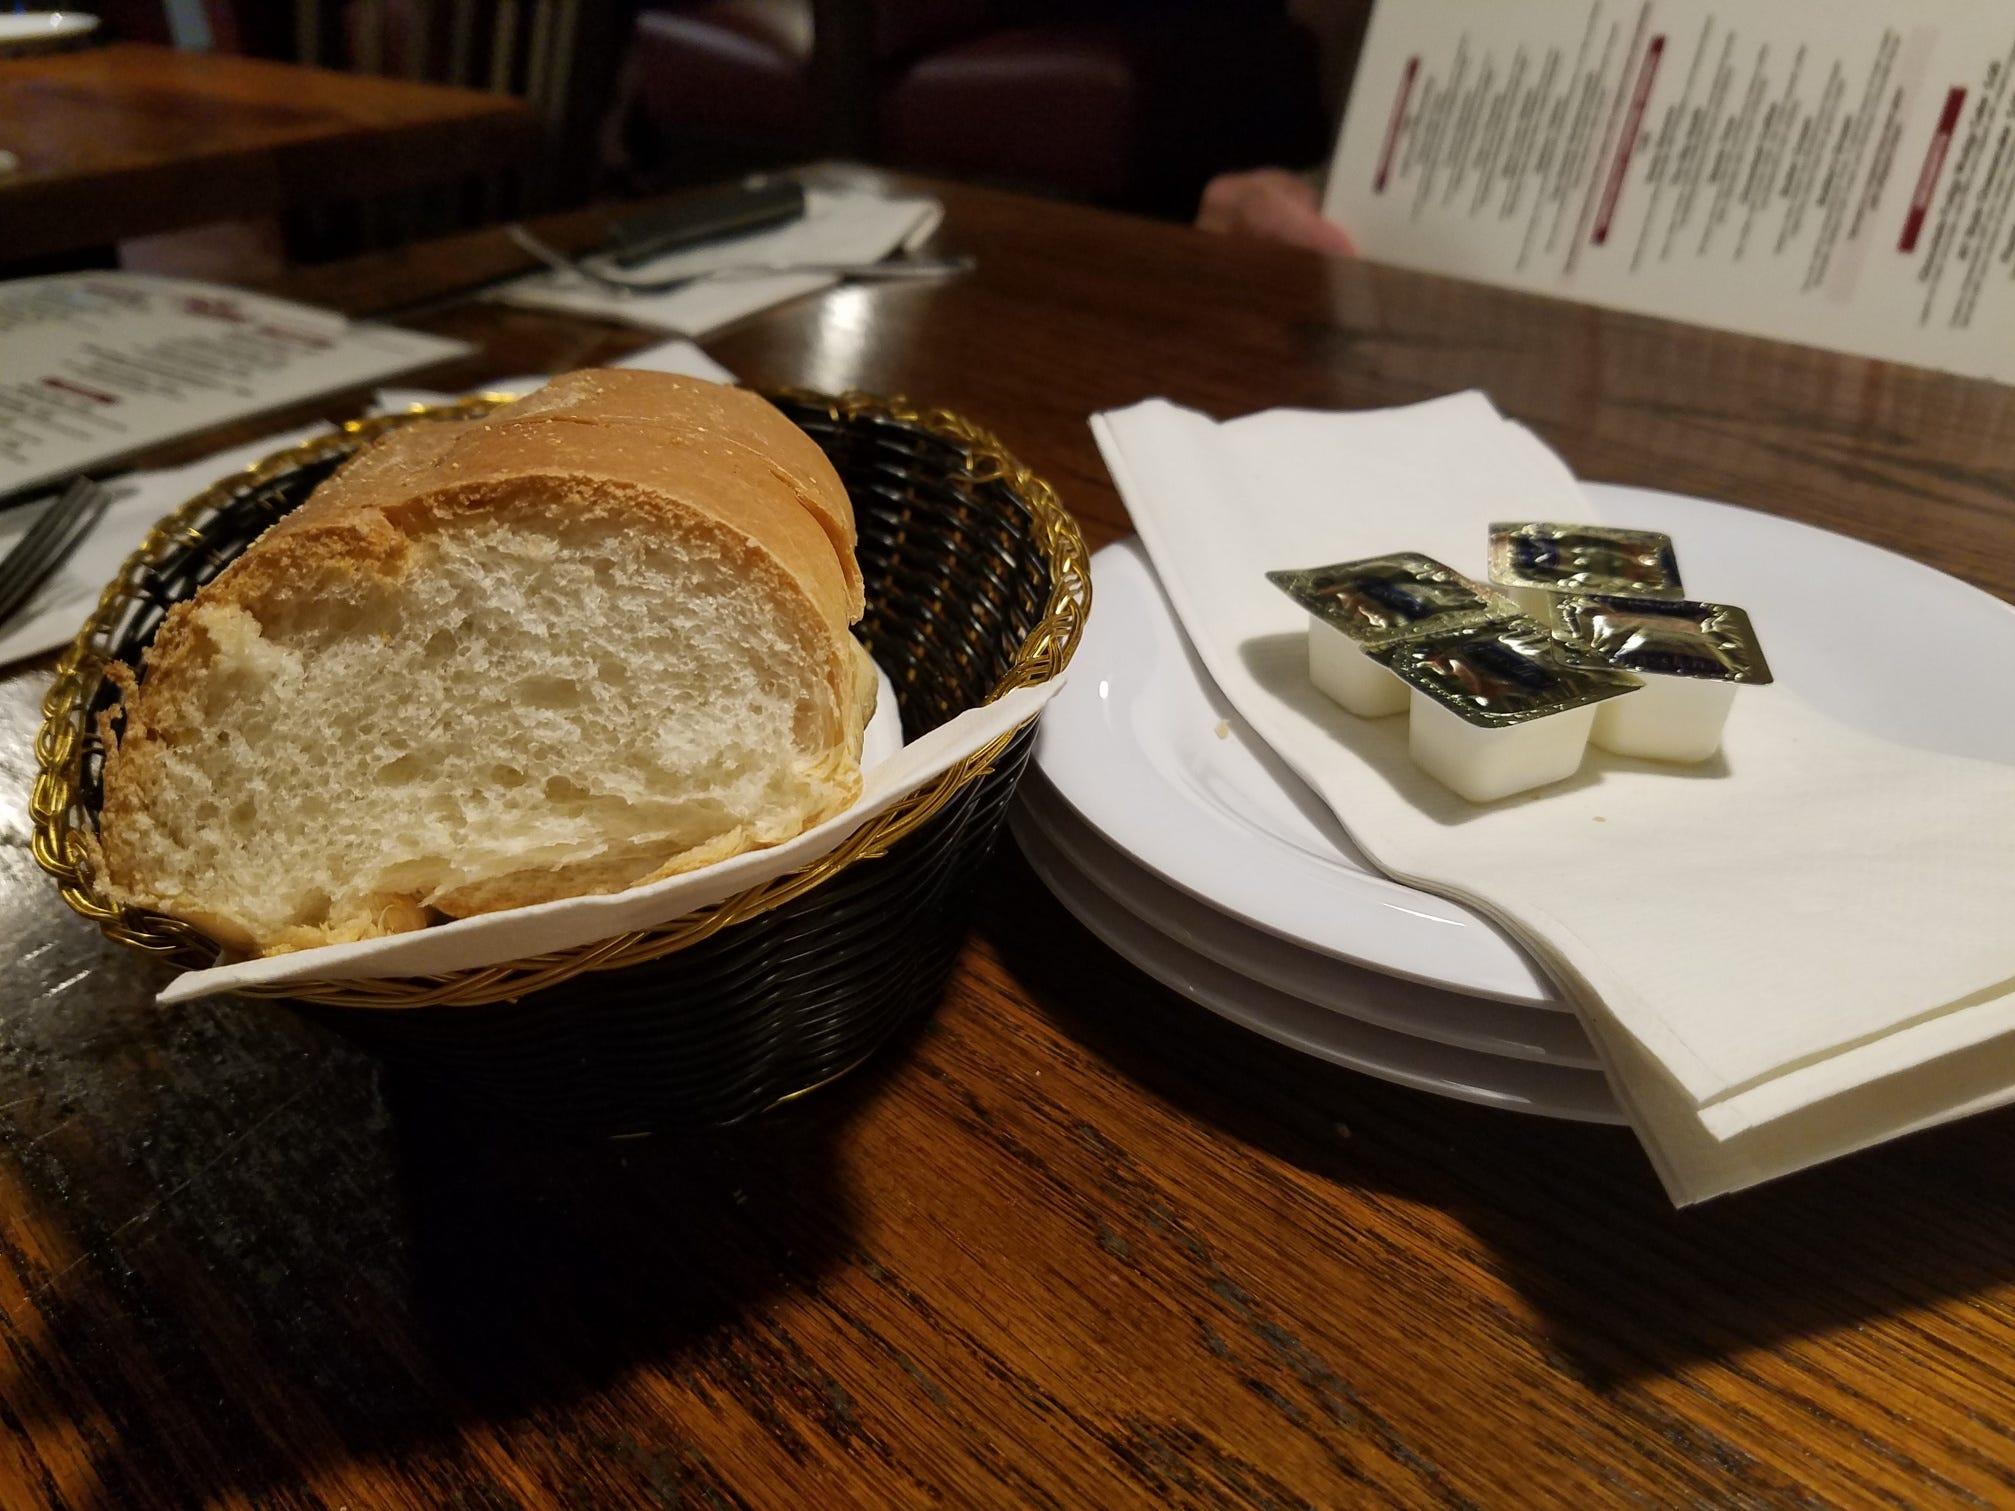 At Bobby Rubino's we received a complimentary loaf of soft Italian bread sourced from a bakery in Fort Lauderdale that also provides the restaurant's sandwich rolls and desserts.